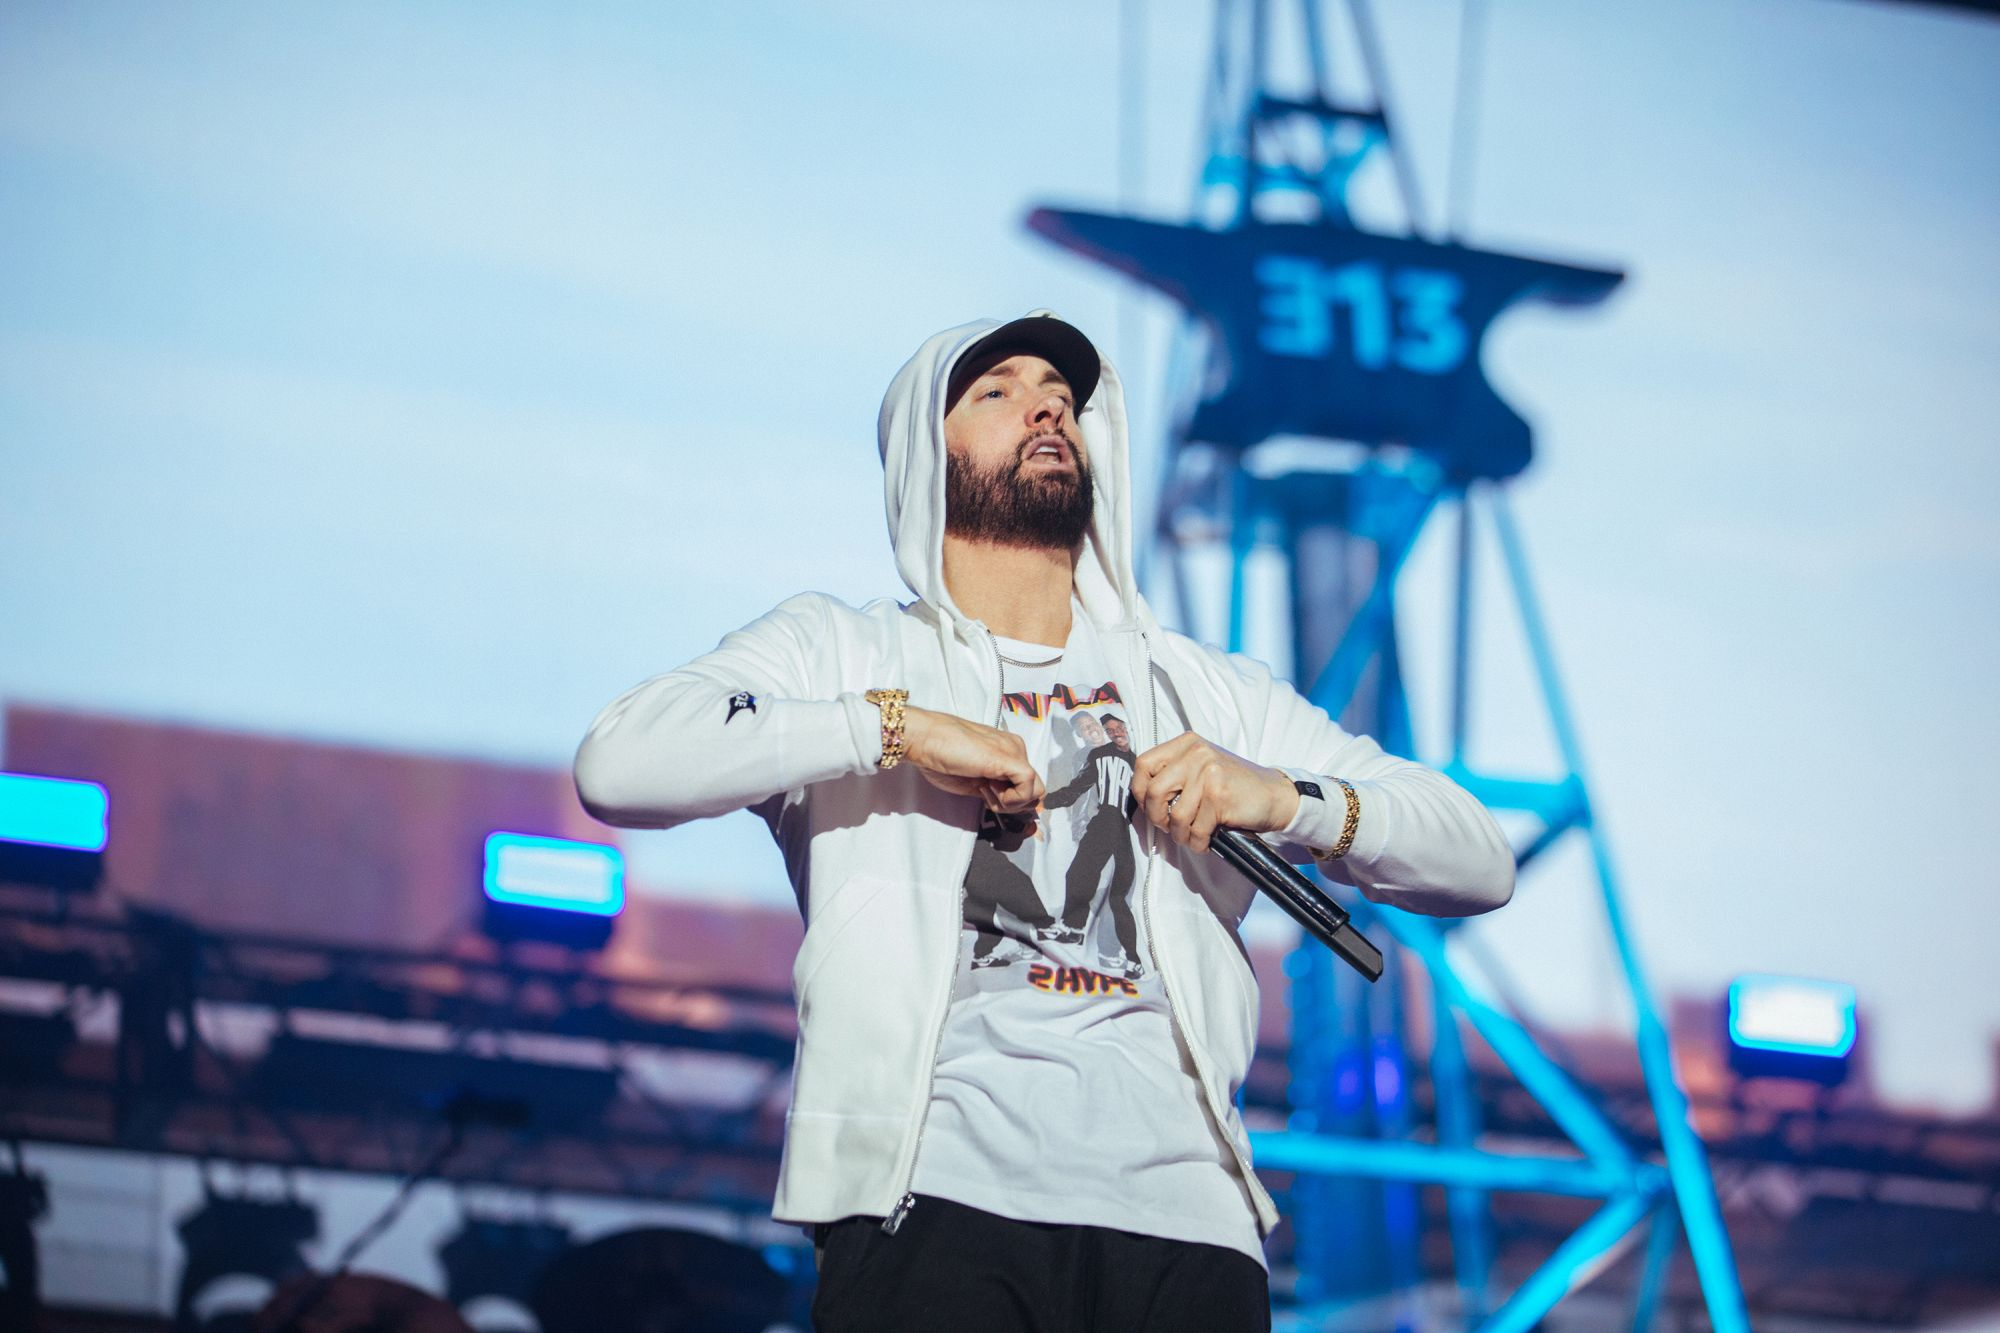 Eminem Live at Abu Dhabi 2019 photo bu Jeremy Deputat